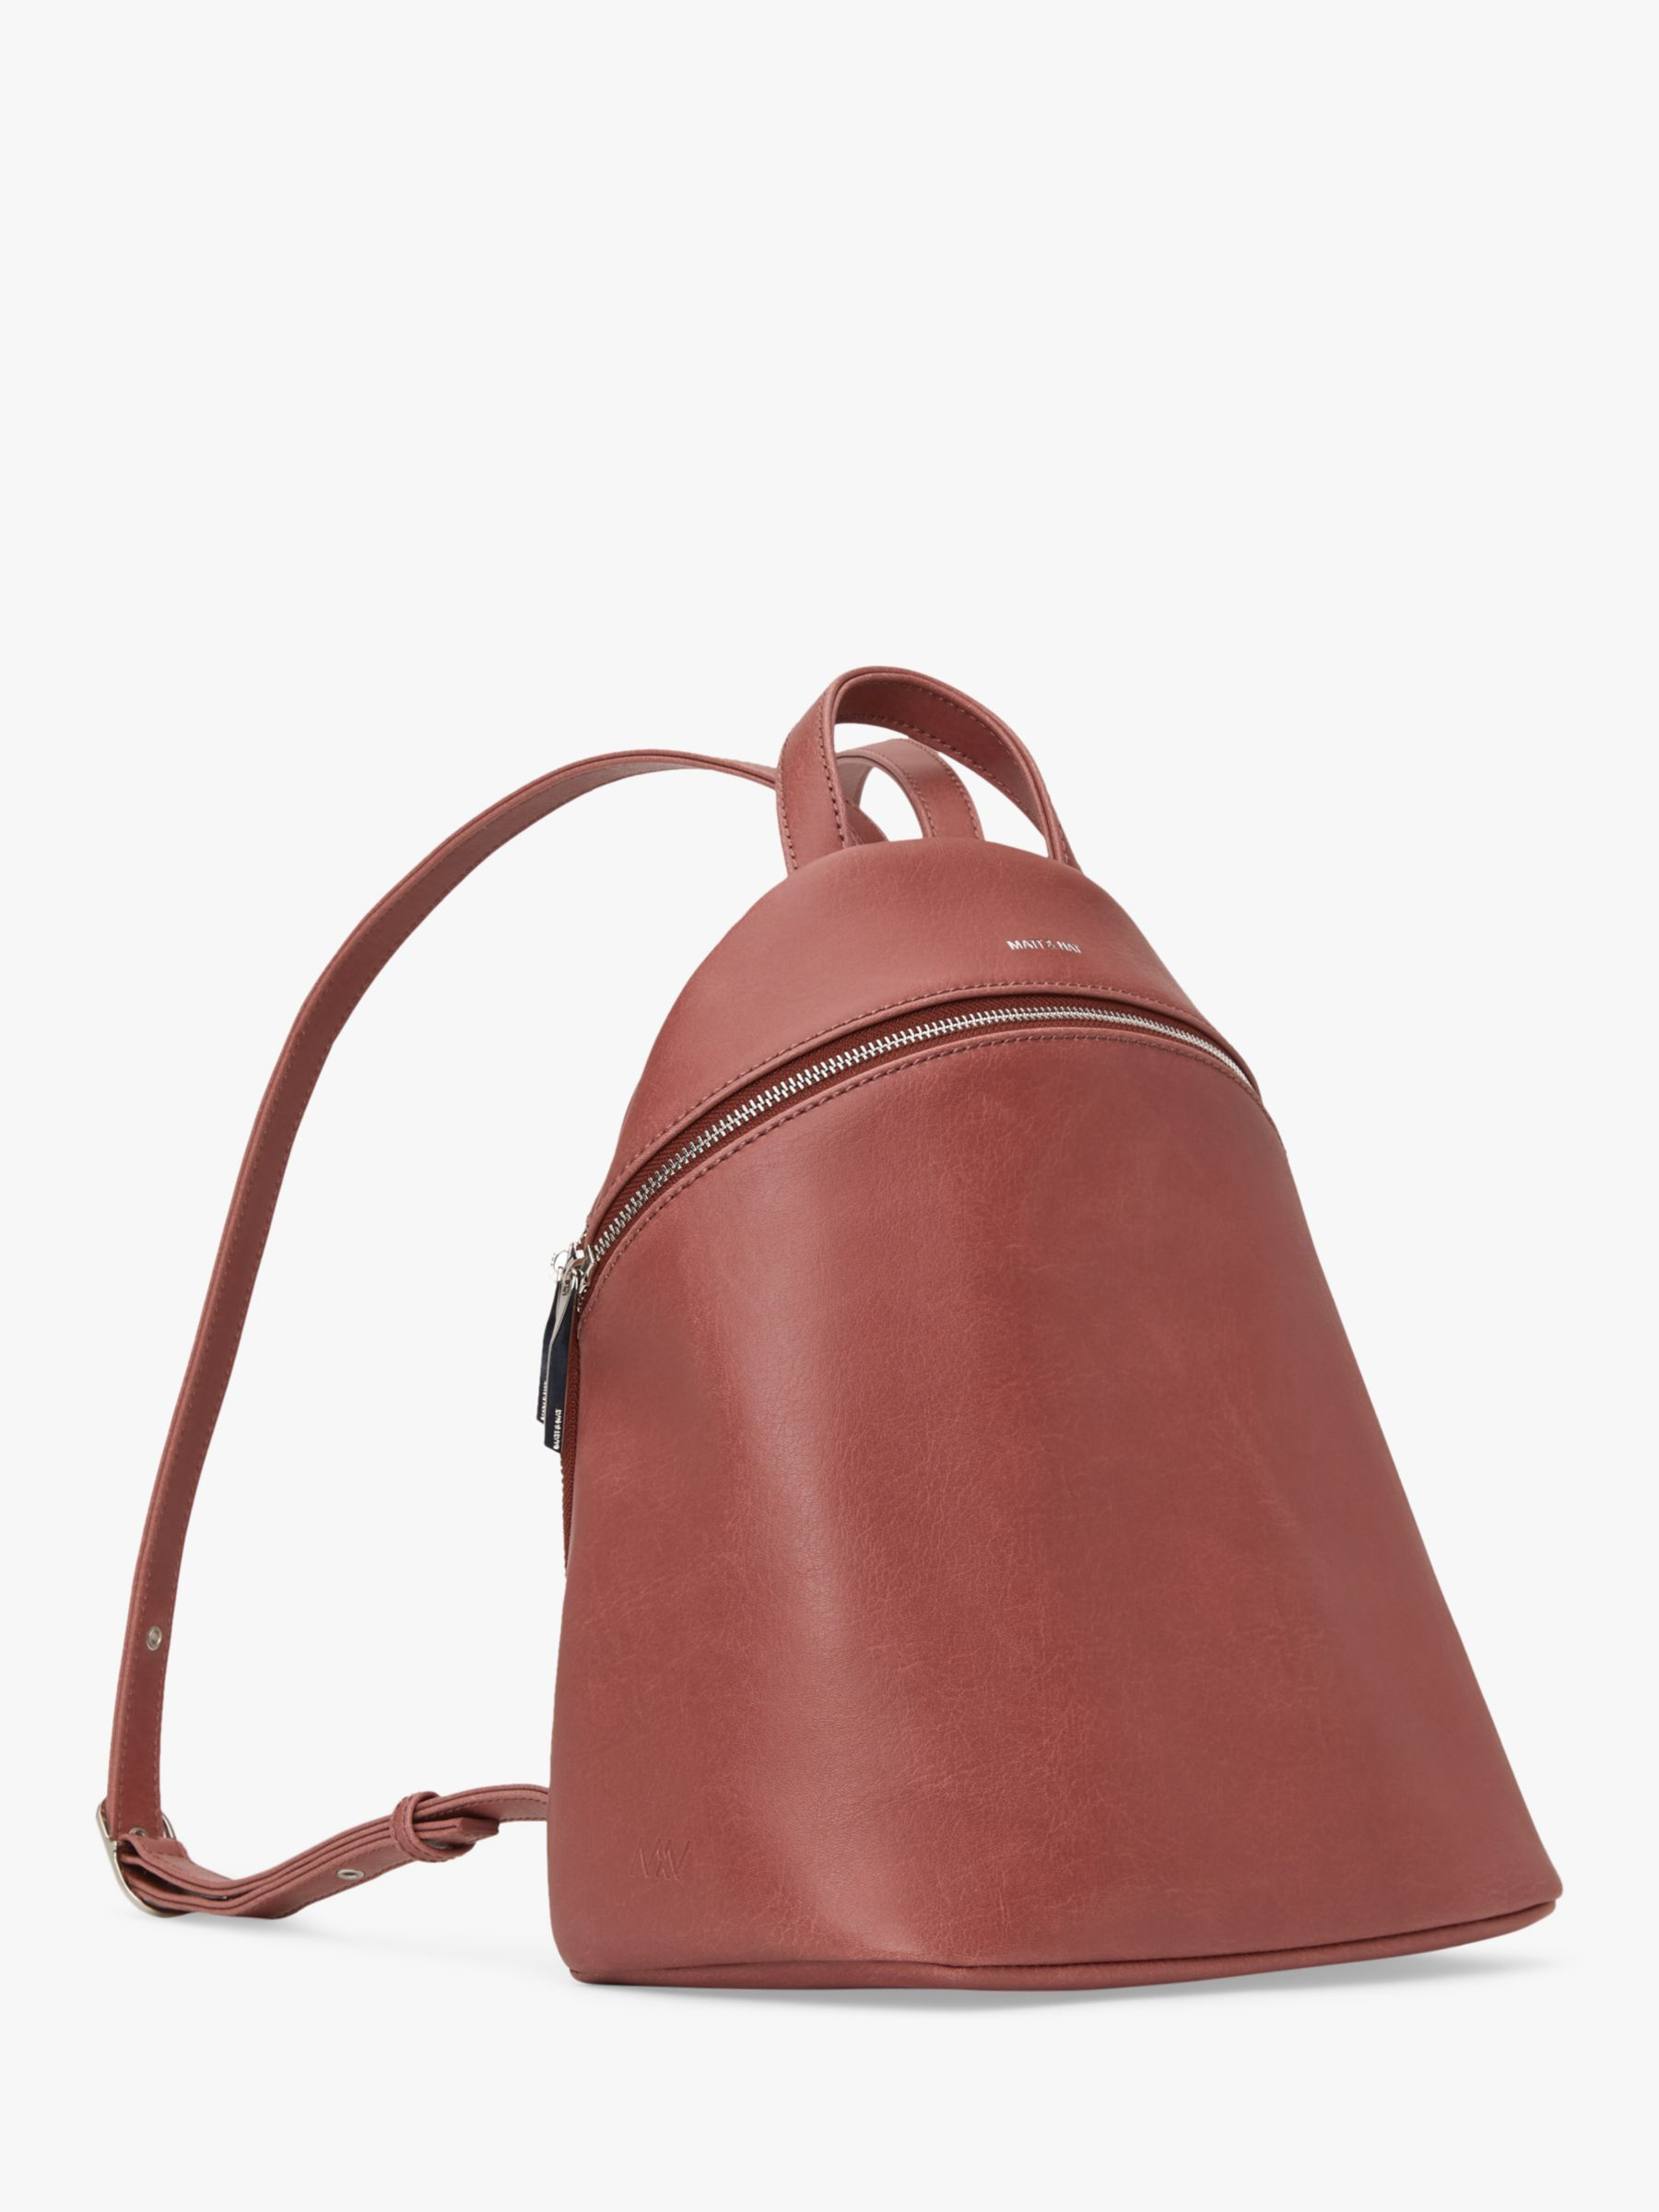 Perfect for busy city commutes, this Aries backpack from the Matt & Nat Vintage Collection has a sleek, smooth finish for a modern appeal. Composed of synthetic material that is completely free from animal-based materials, the faux leather design secures with a curved zip fastening at the top. The bag opens to reveal a zipped and a smartphone pocket to help keep you organised. It also comes with a handy back pocket for travel passes and frequently used items. It is completed with subtle branding